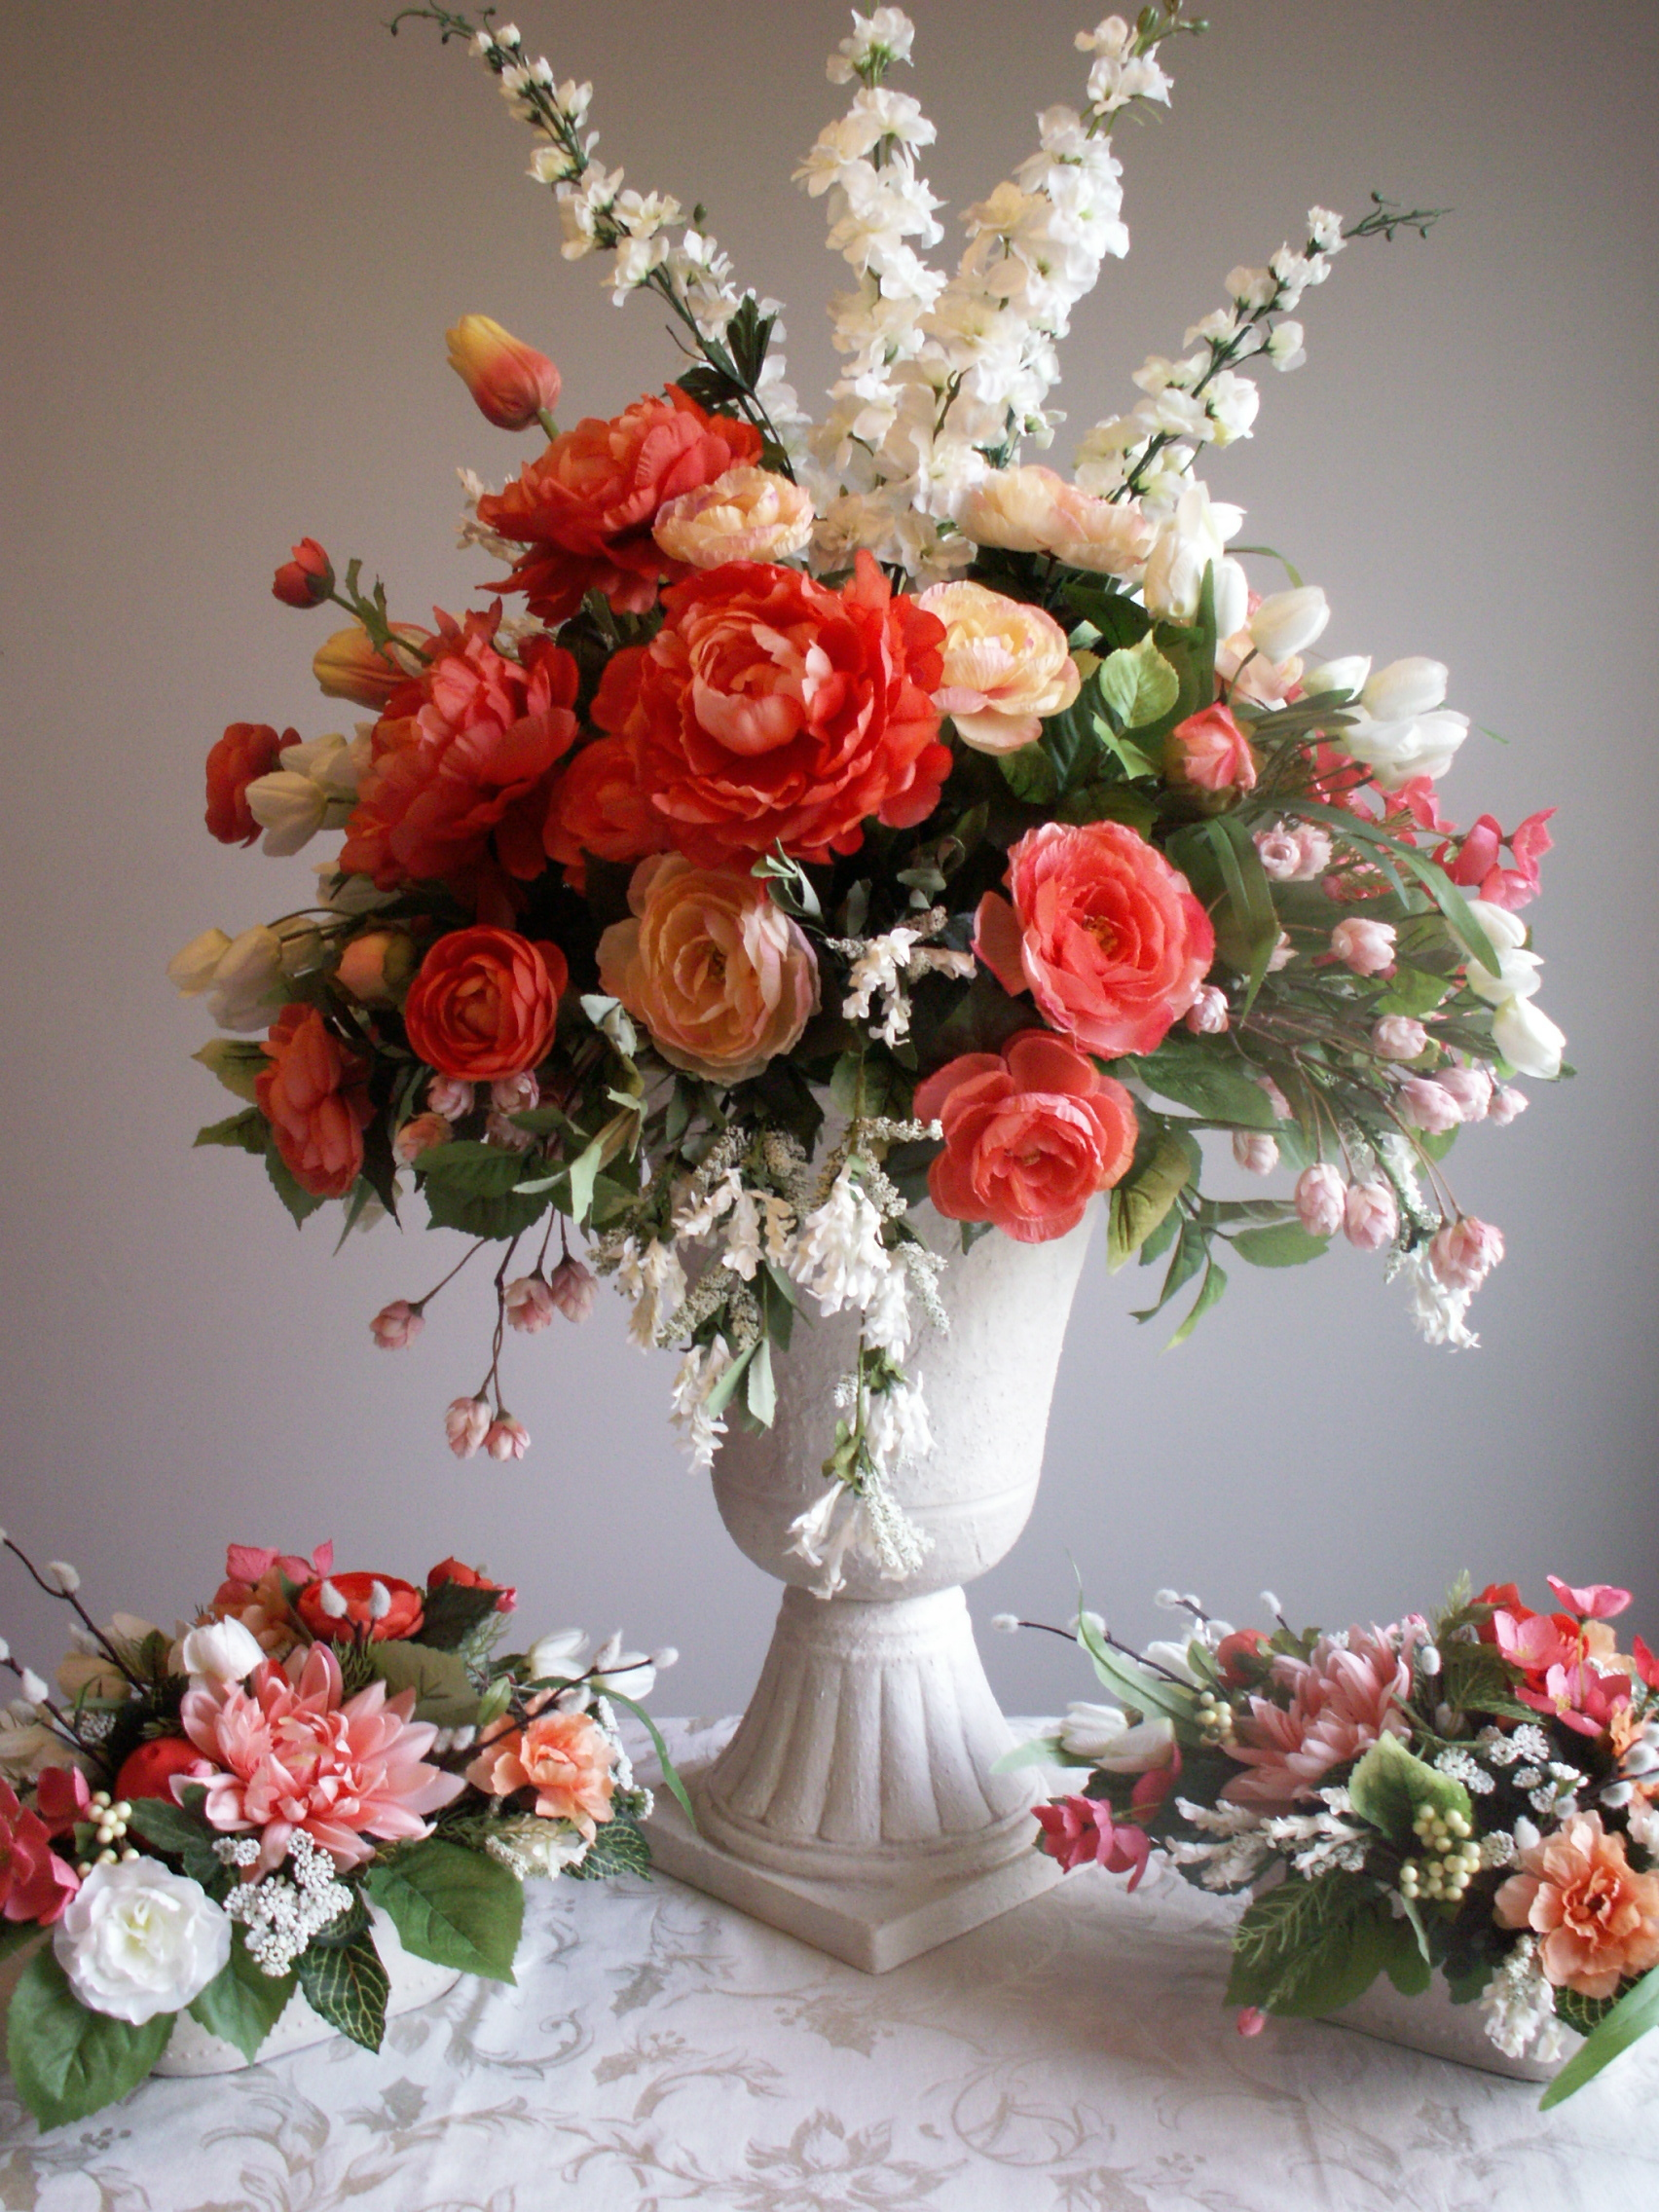 Silk Entry Arrangement with side table florals